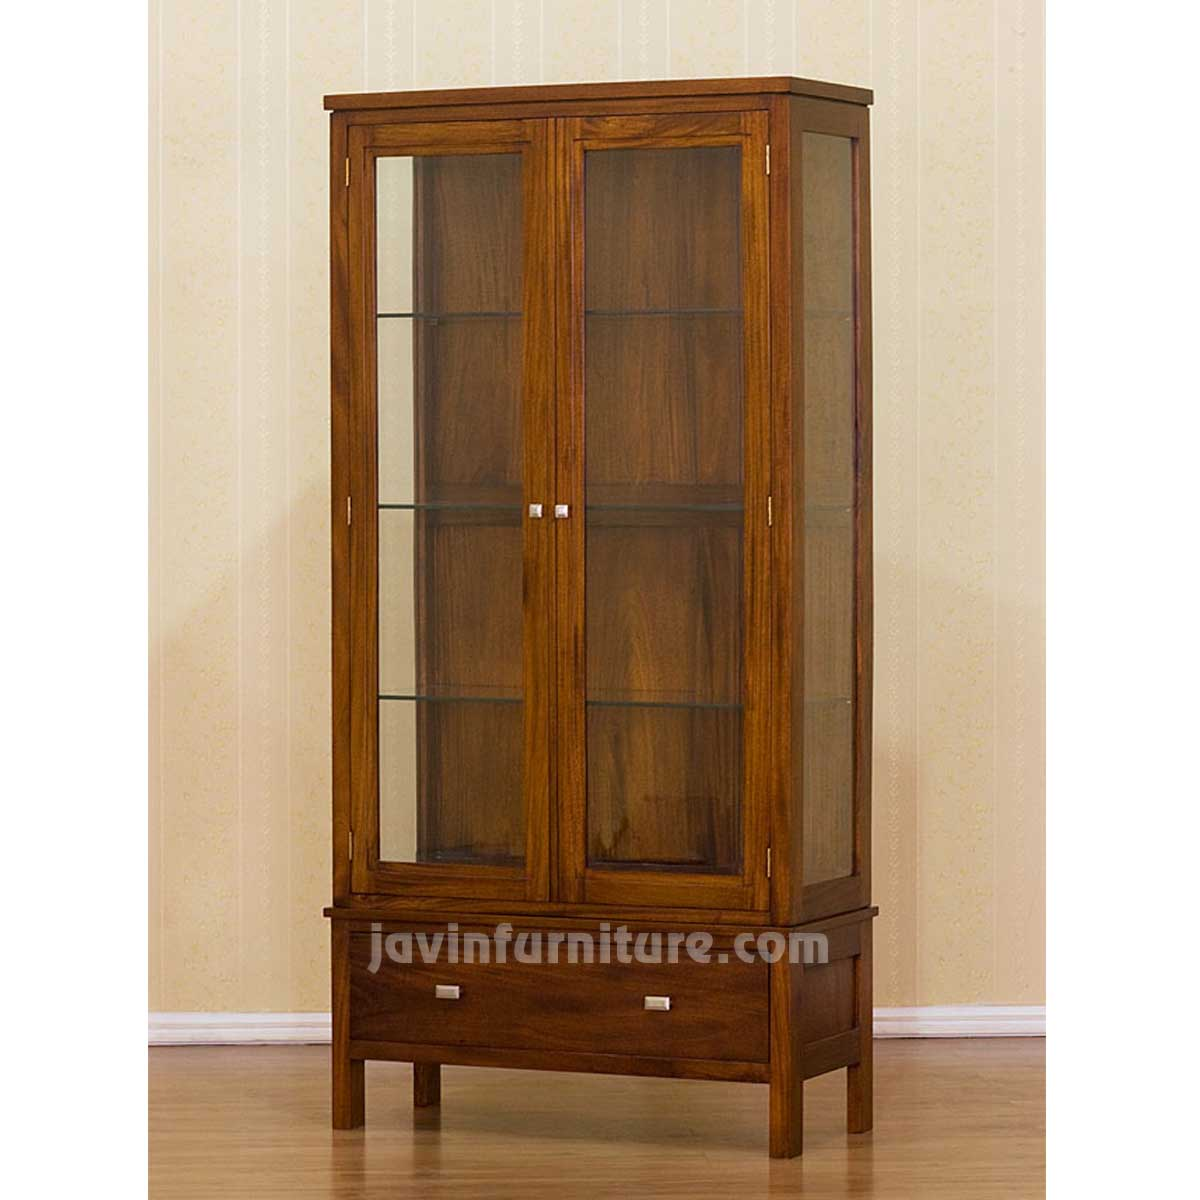 Le Meilleur Storage Cabinet With Glass Doors Homesfeed Ce Mois Ci